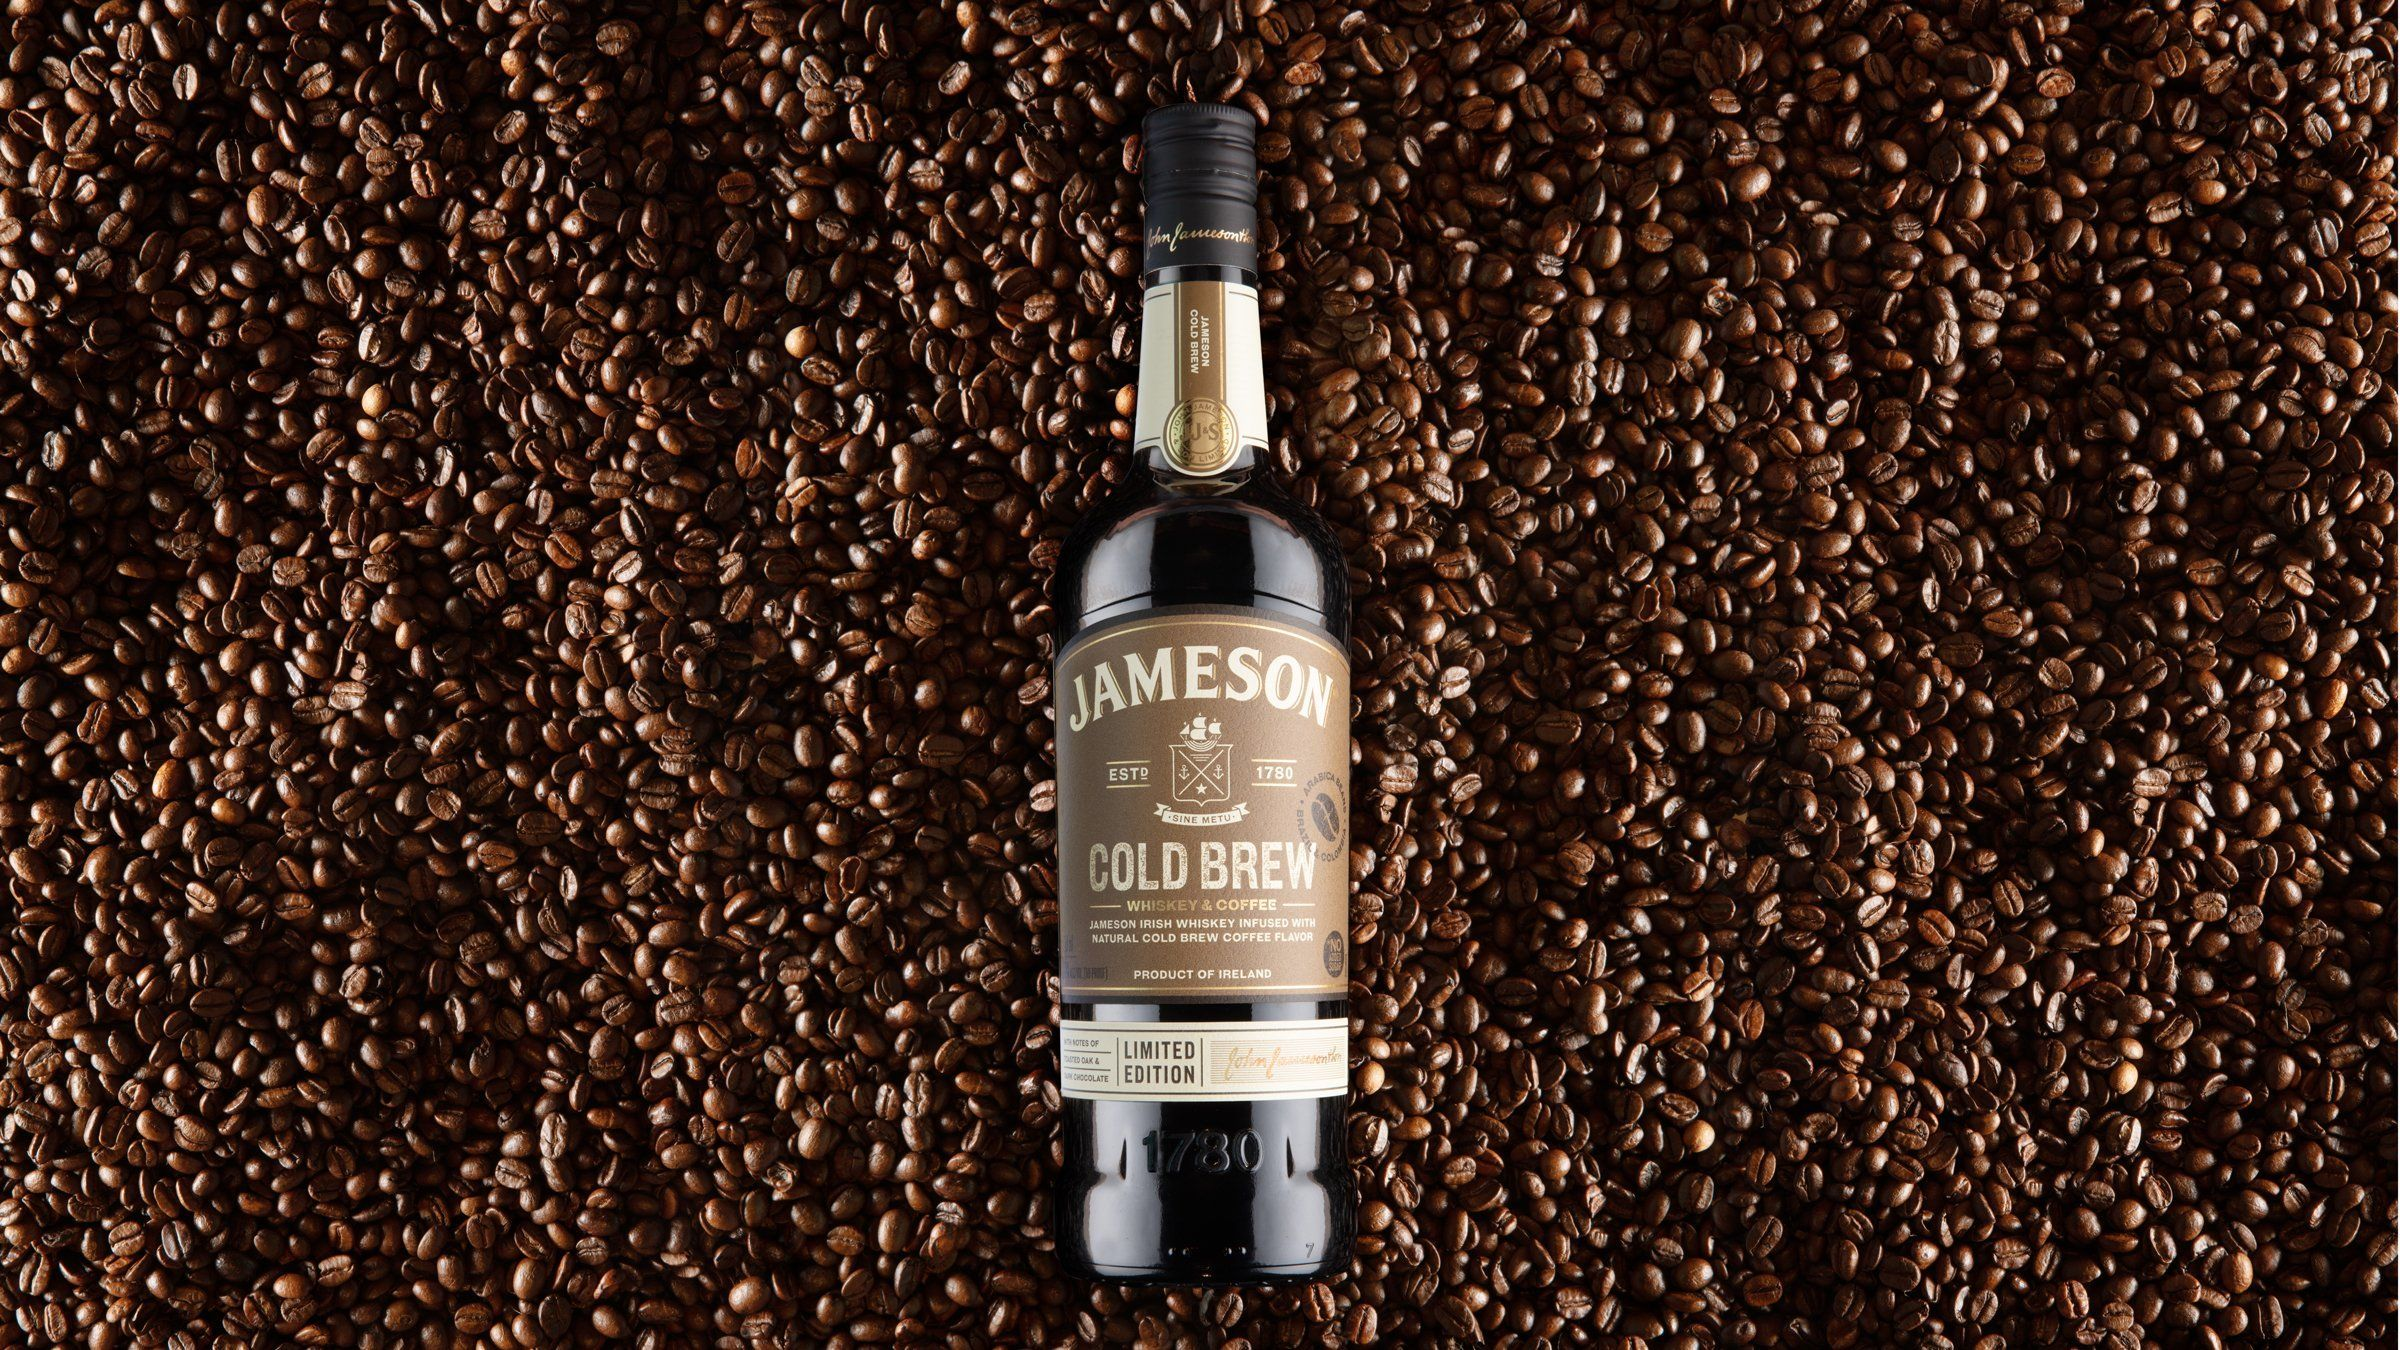 Jameson Release New Limited-edition Cold Brew photo